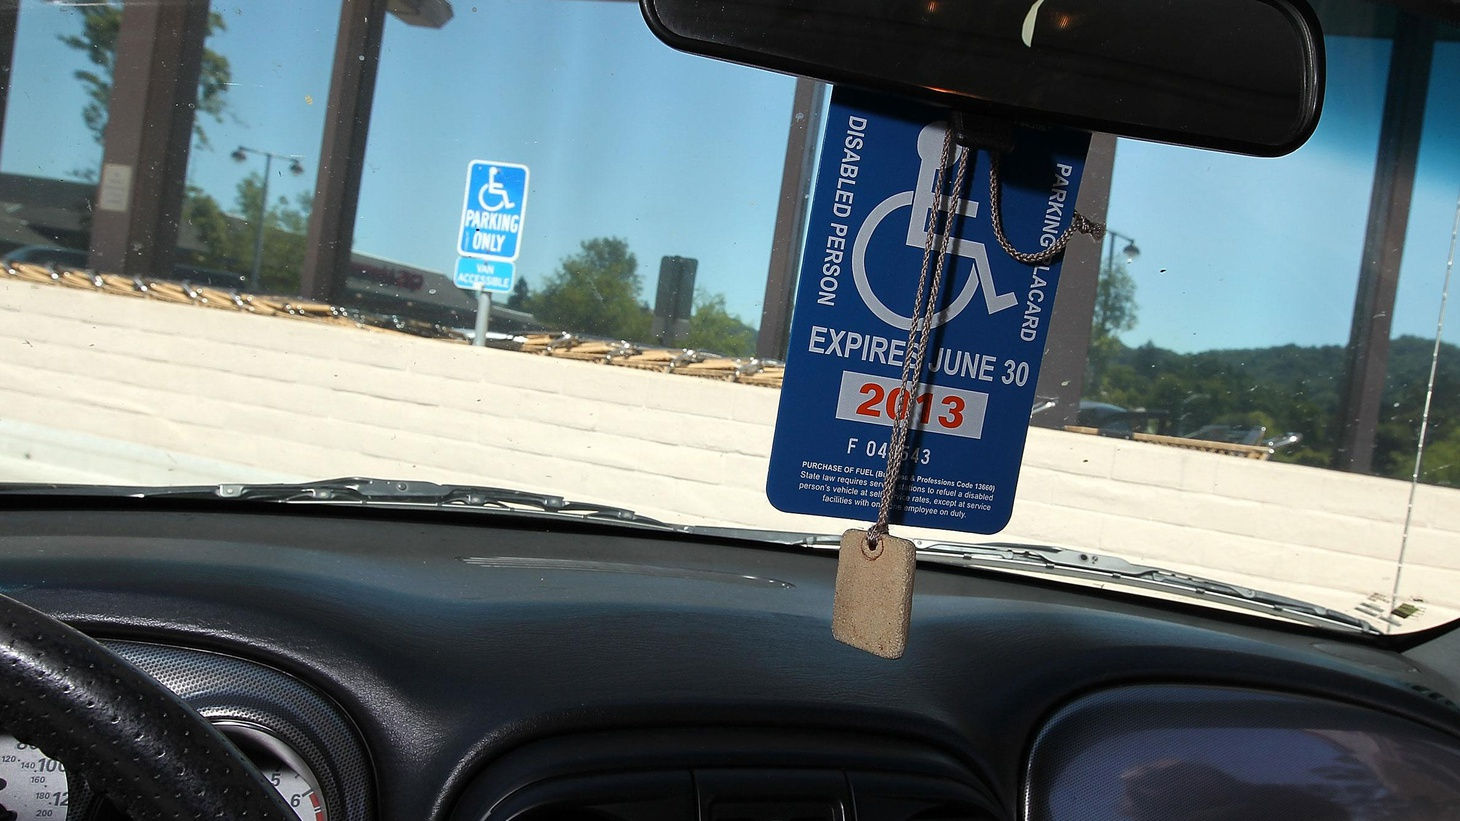 Ever wondered if drivers with disabled placards were really disabled? The DMV says many aren't, but privacy laws don't even allow enforcement officers to ask.